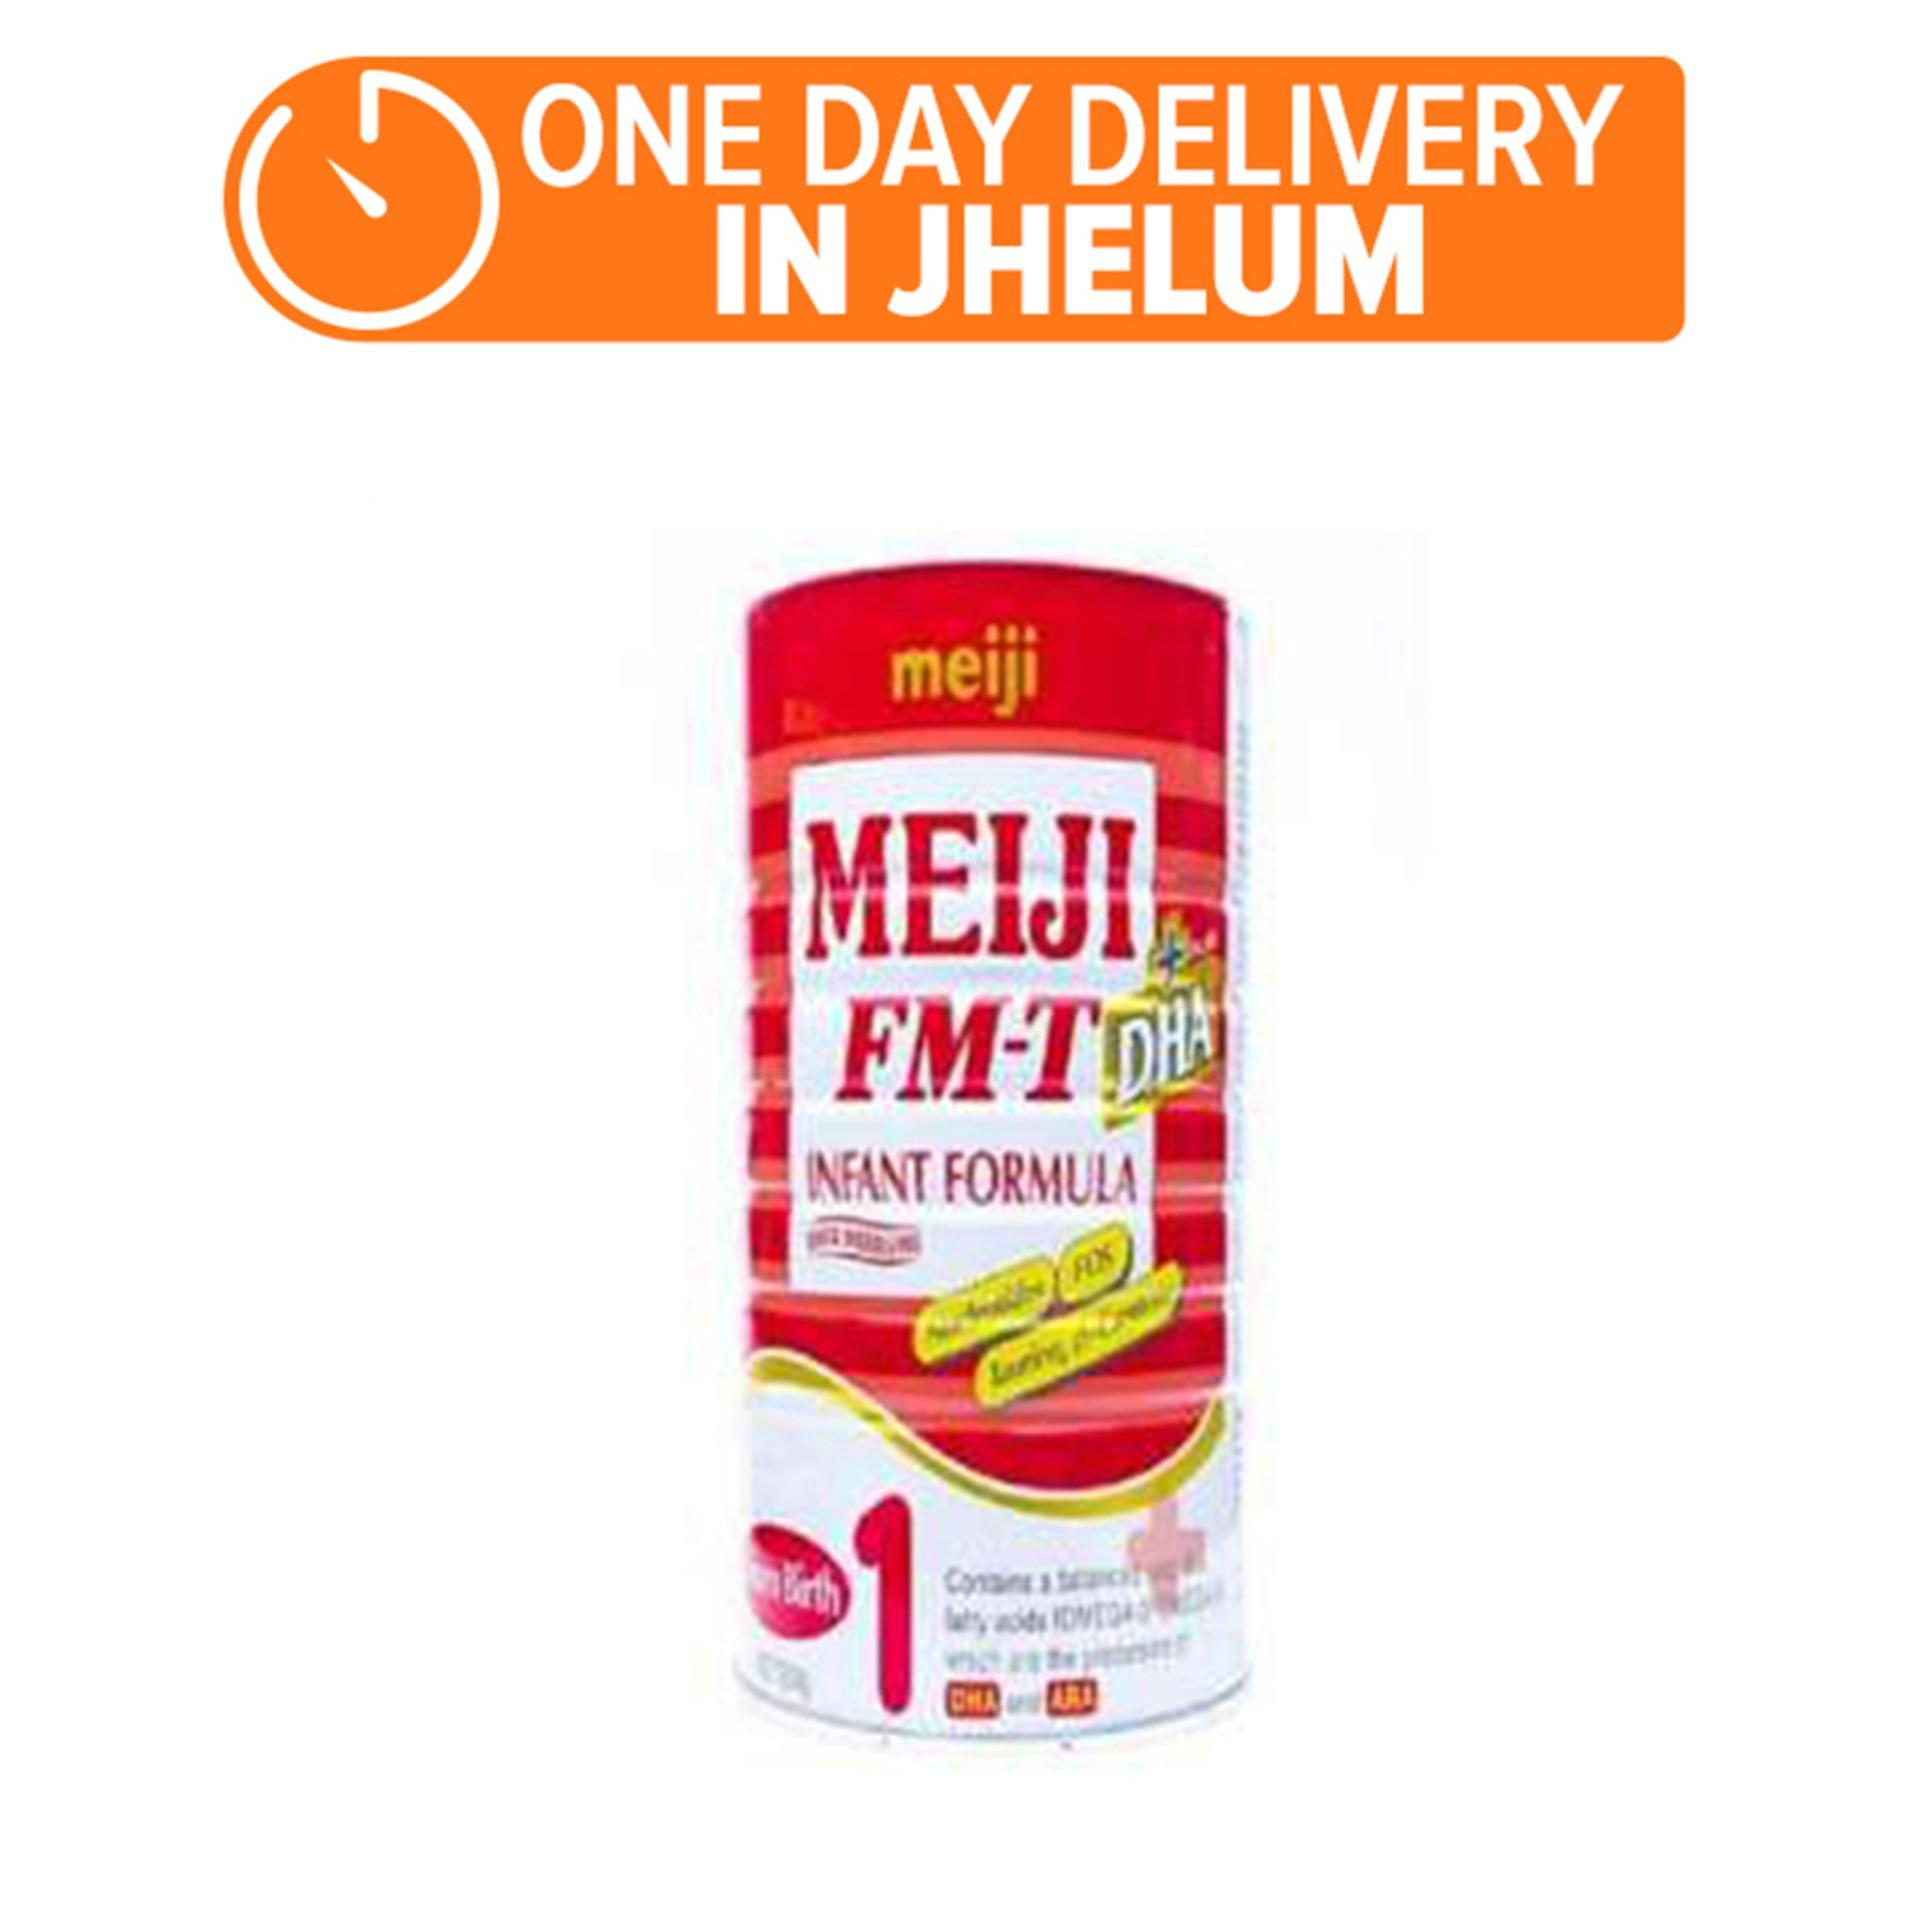 MEIJI FM-T INFANT FORMULA 900 GM (One day delivery in Jhelum)